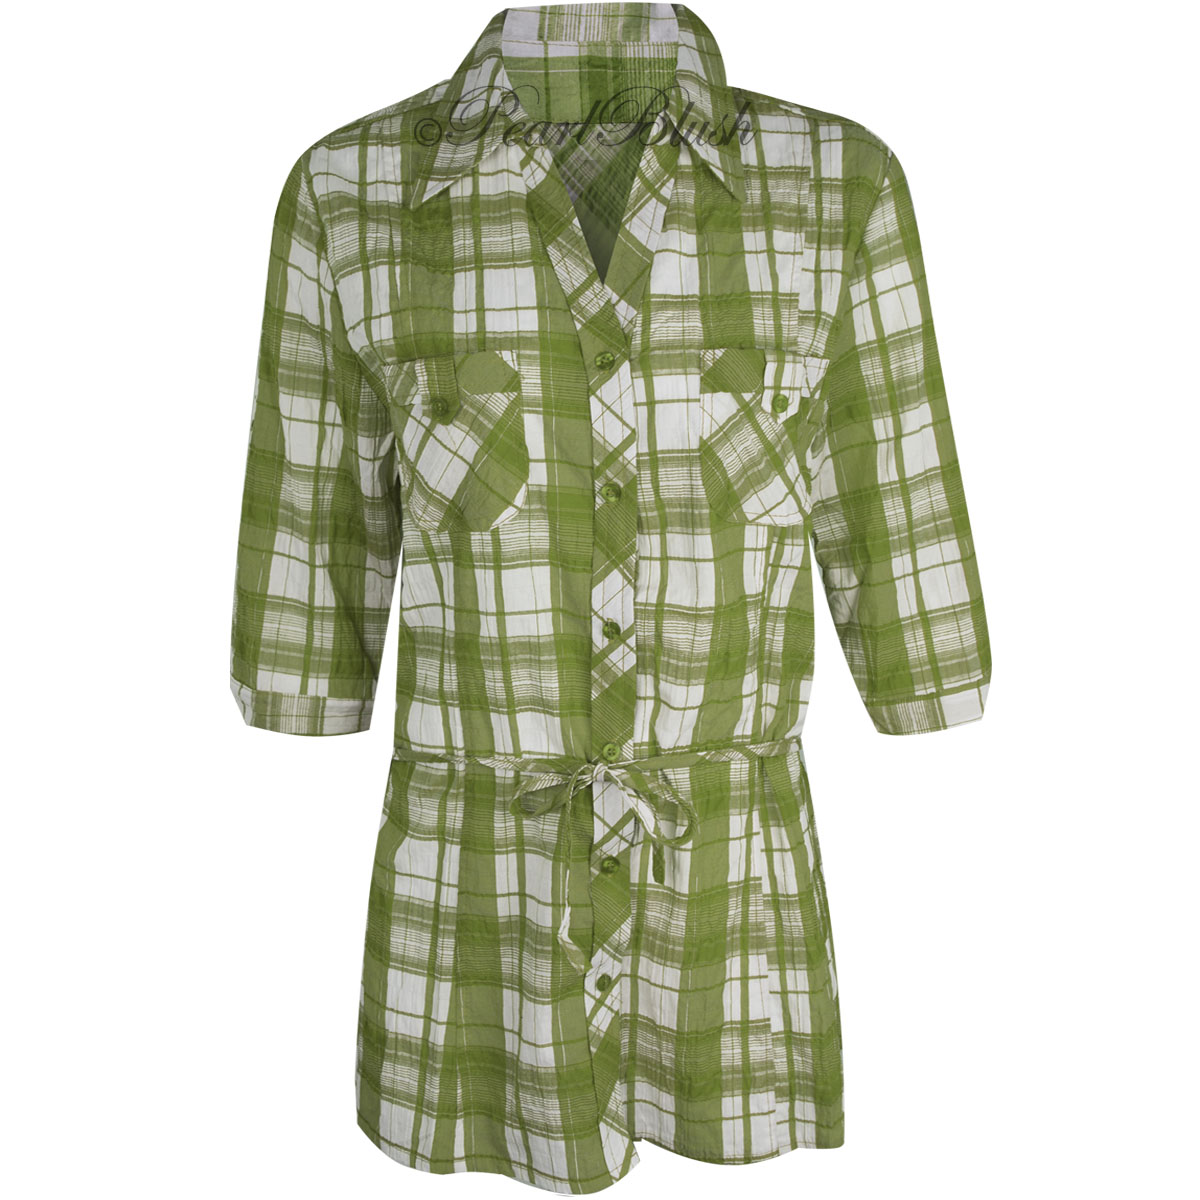 Womens ladies plaid check shirt 3 4 sleeve flannel button for Womens patterned button down shirts